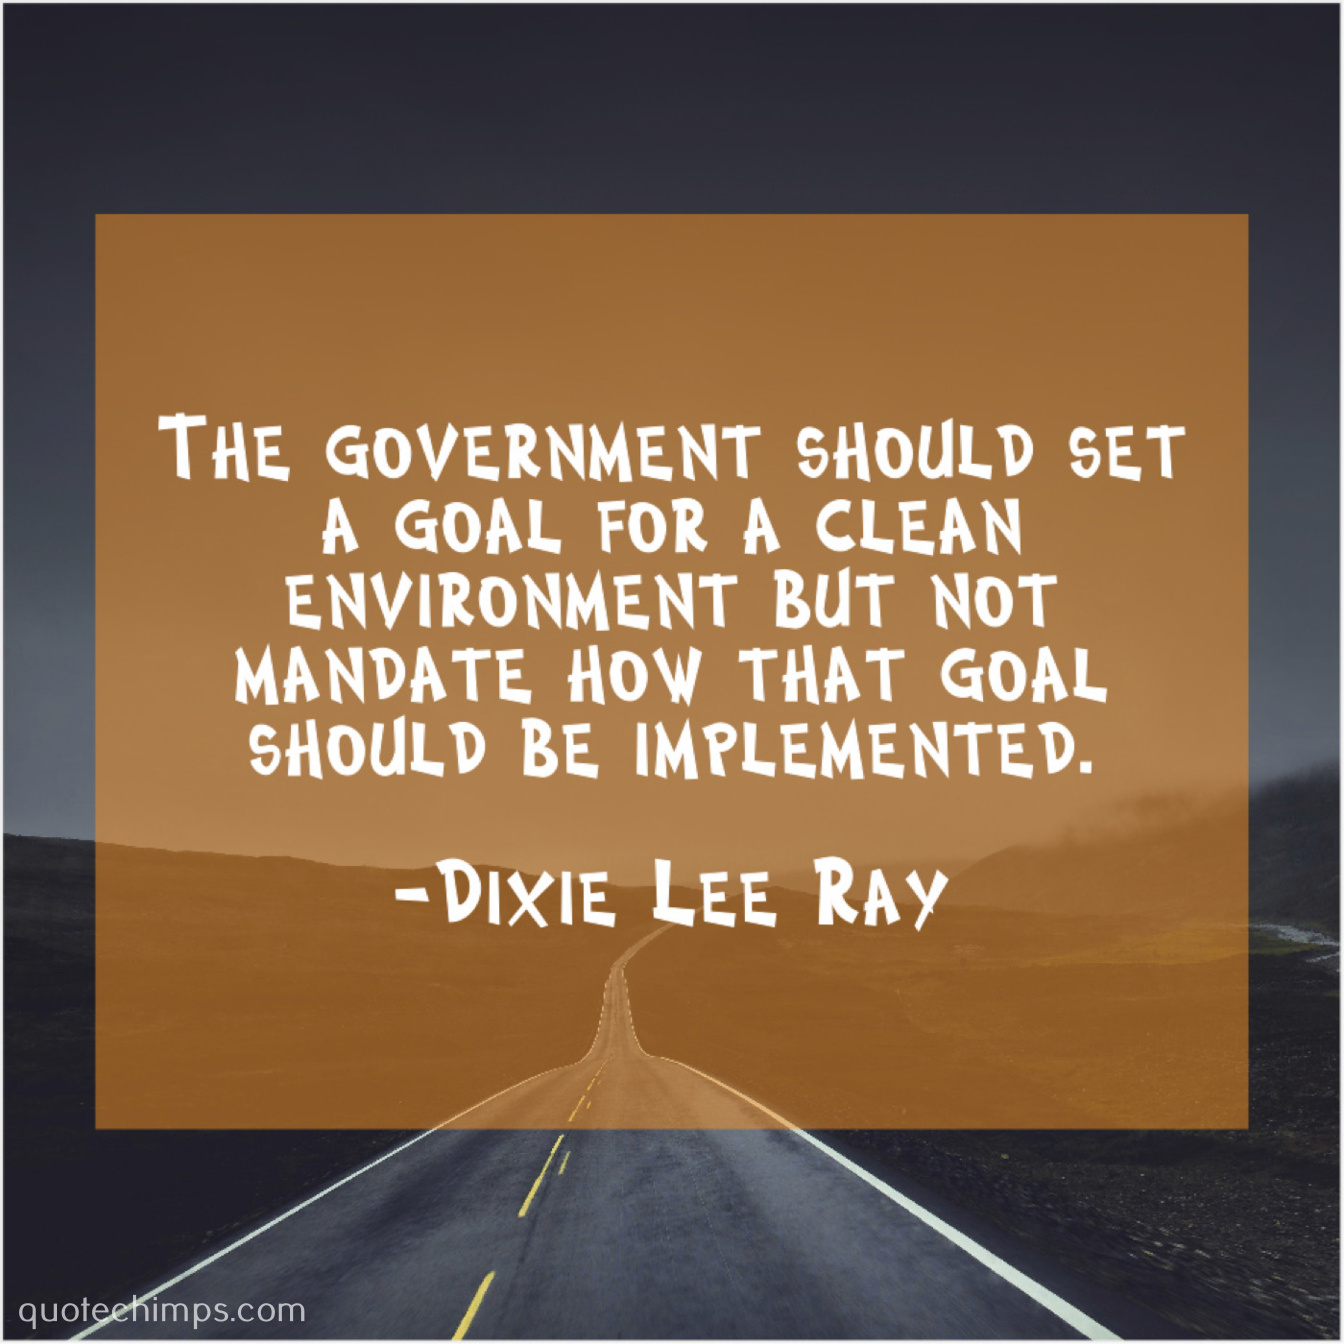 Dixie Lee Ray | | Quote Chimps